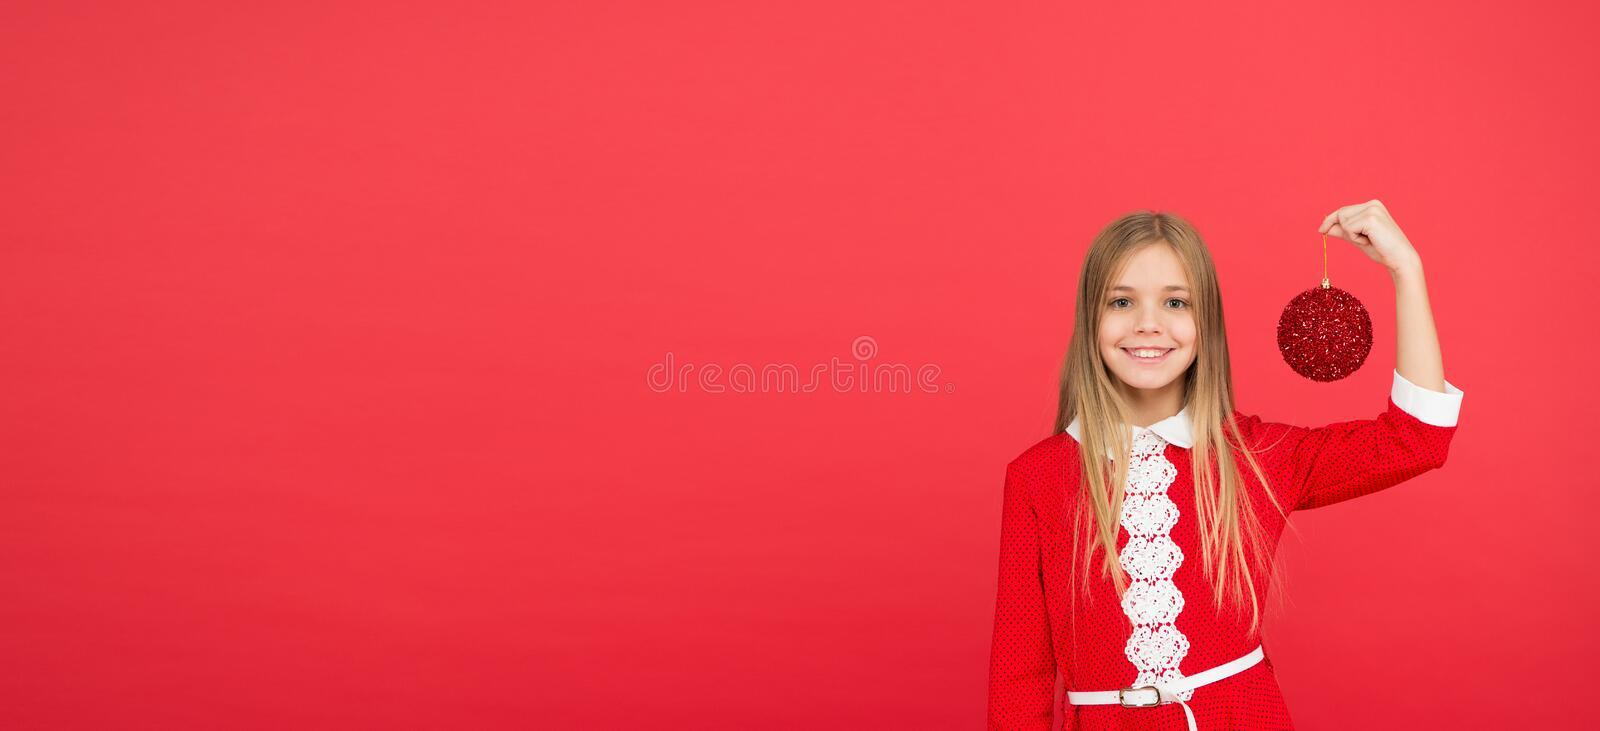 Beautiful decor. Christmas party. Winter holidays. Playful mood. Christmas celebration idea. Happy face. Shine and. Glitter. School party. Child hold shimmering royalty free stock photos